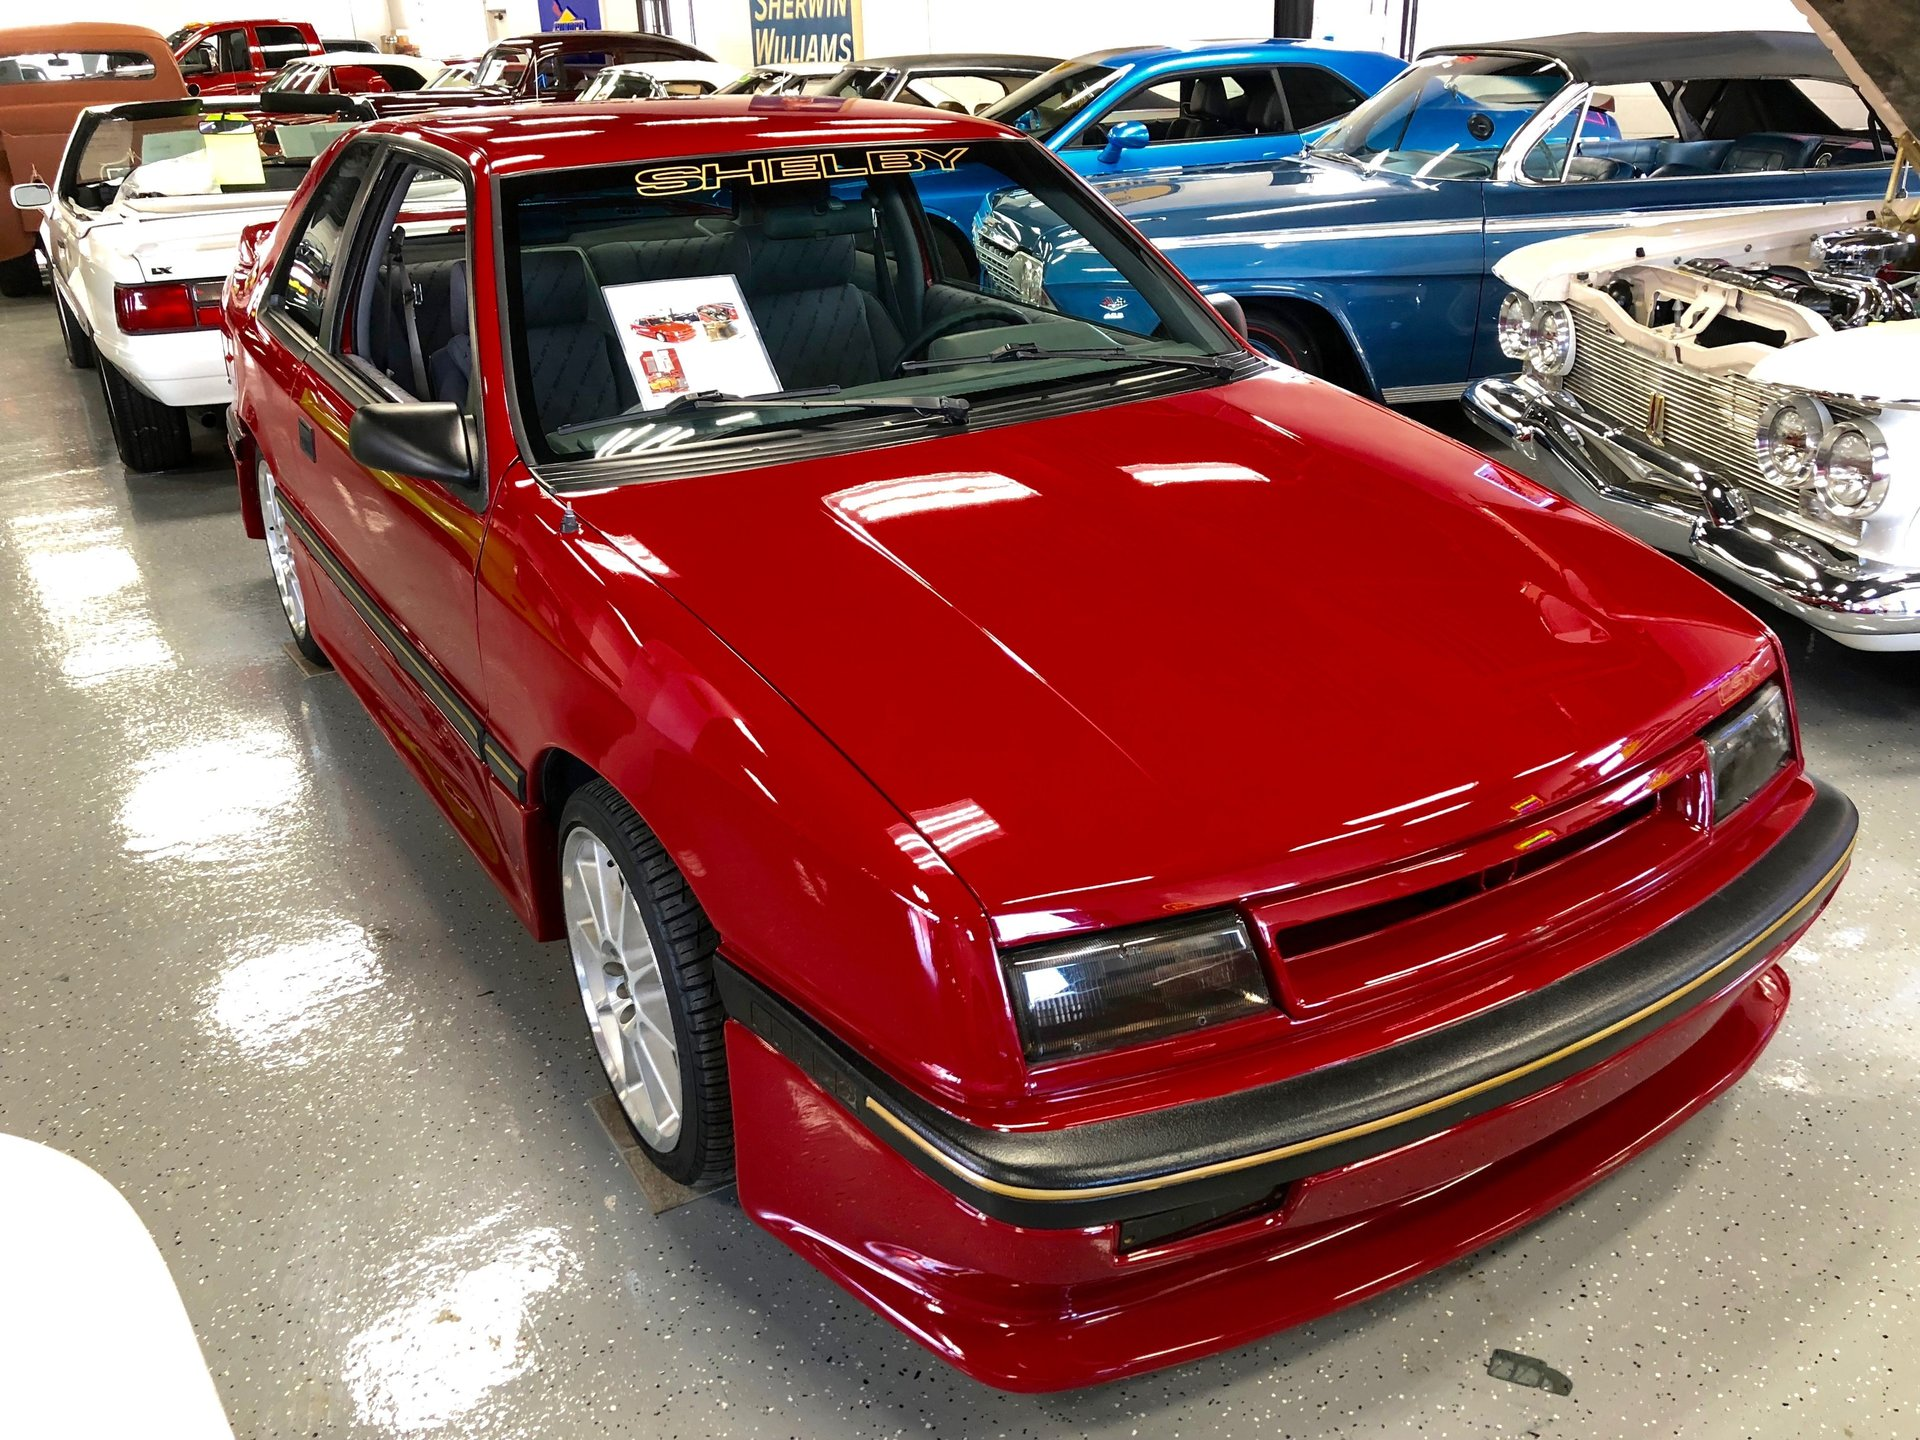 Turbo Title Loan >> 1989 Dodge Shelby csx | Showdown Auto Sales - Drive Your Dream